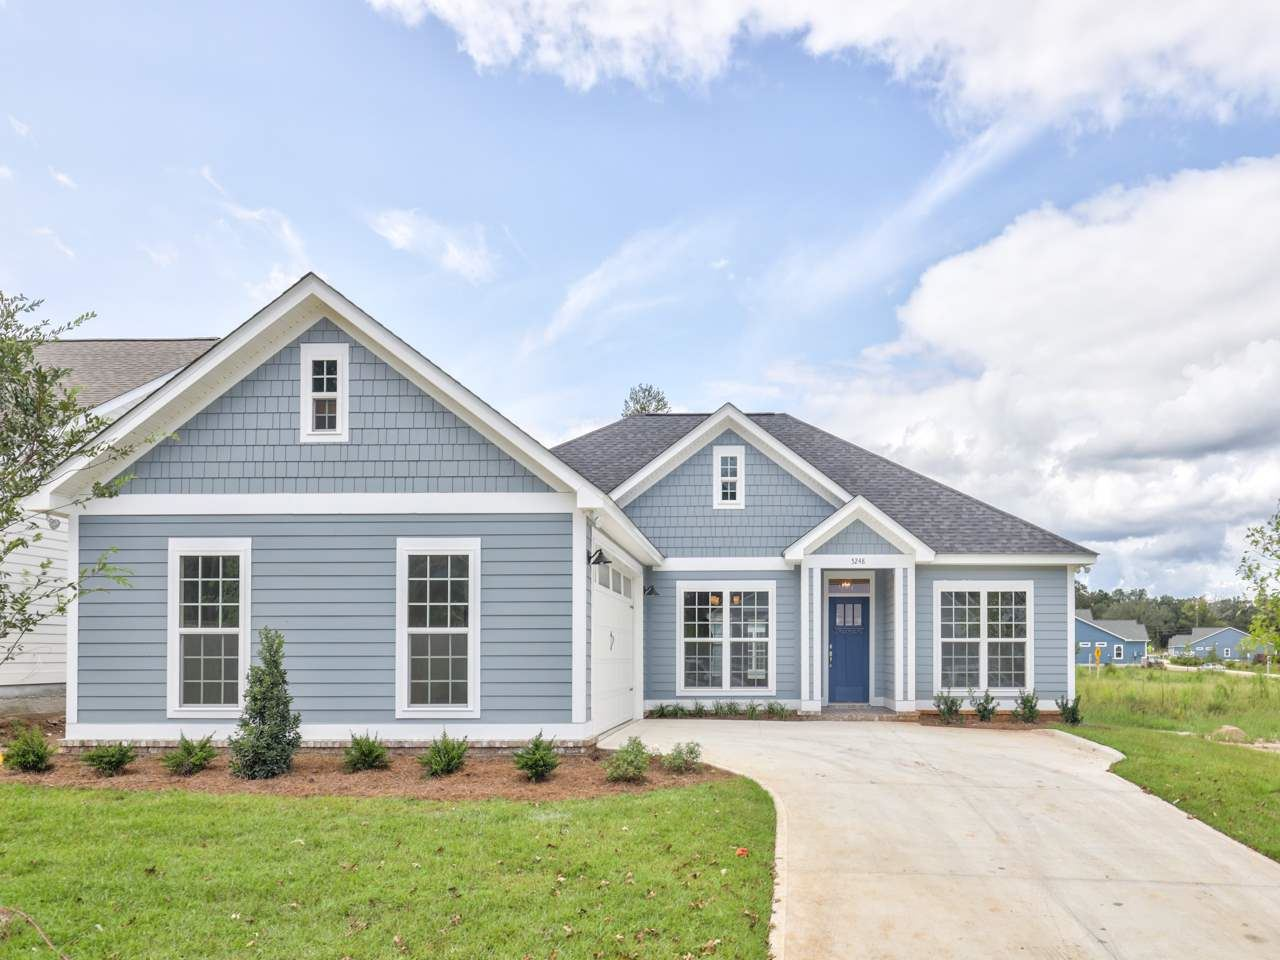 5248 Old Retreat Way, Tallahassee, FL 32317 - MLS#: 324006